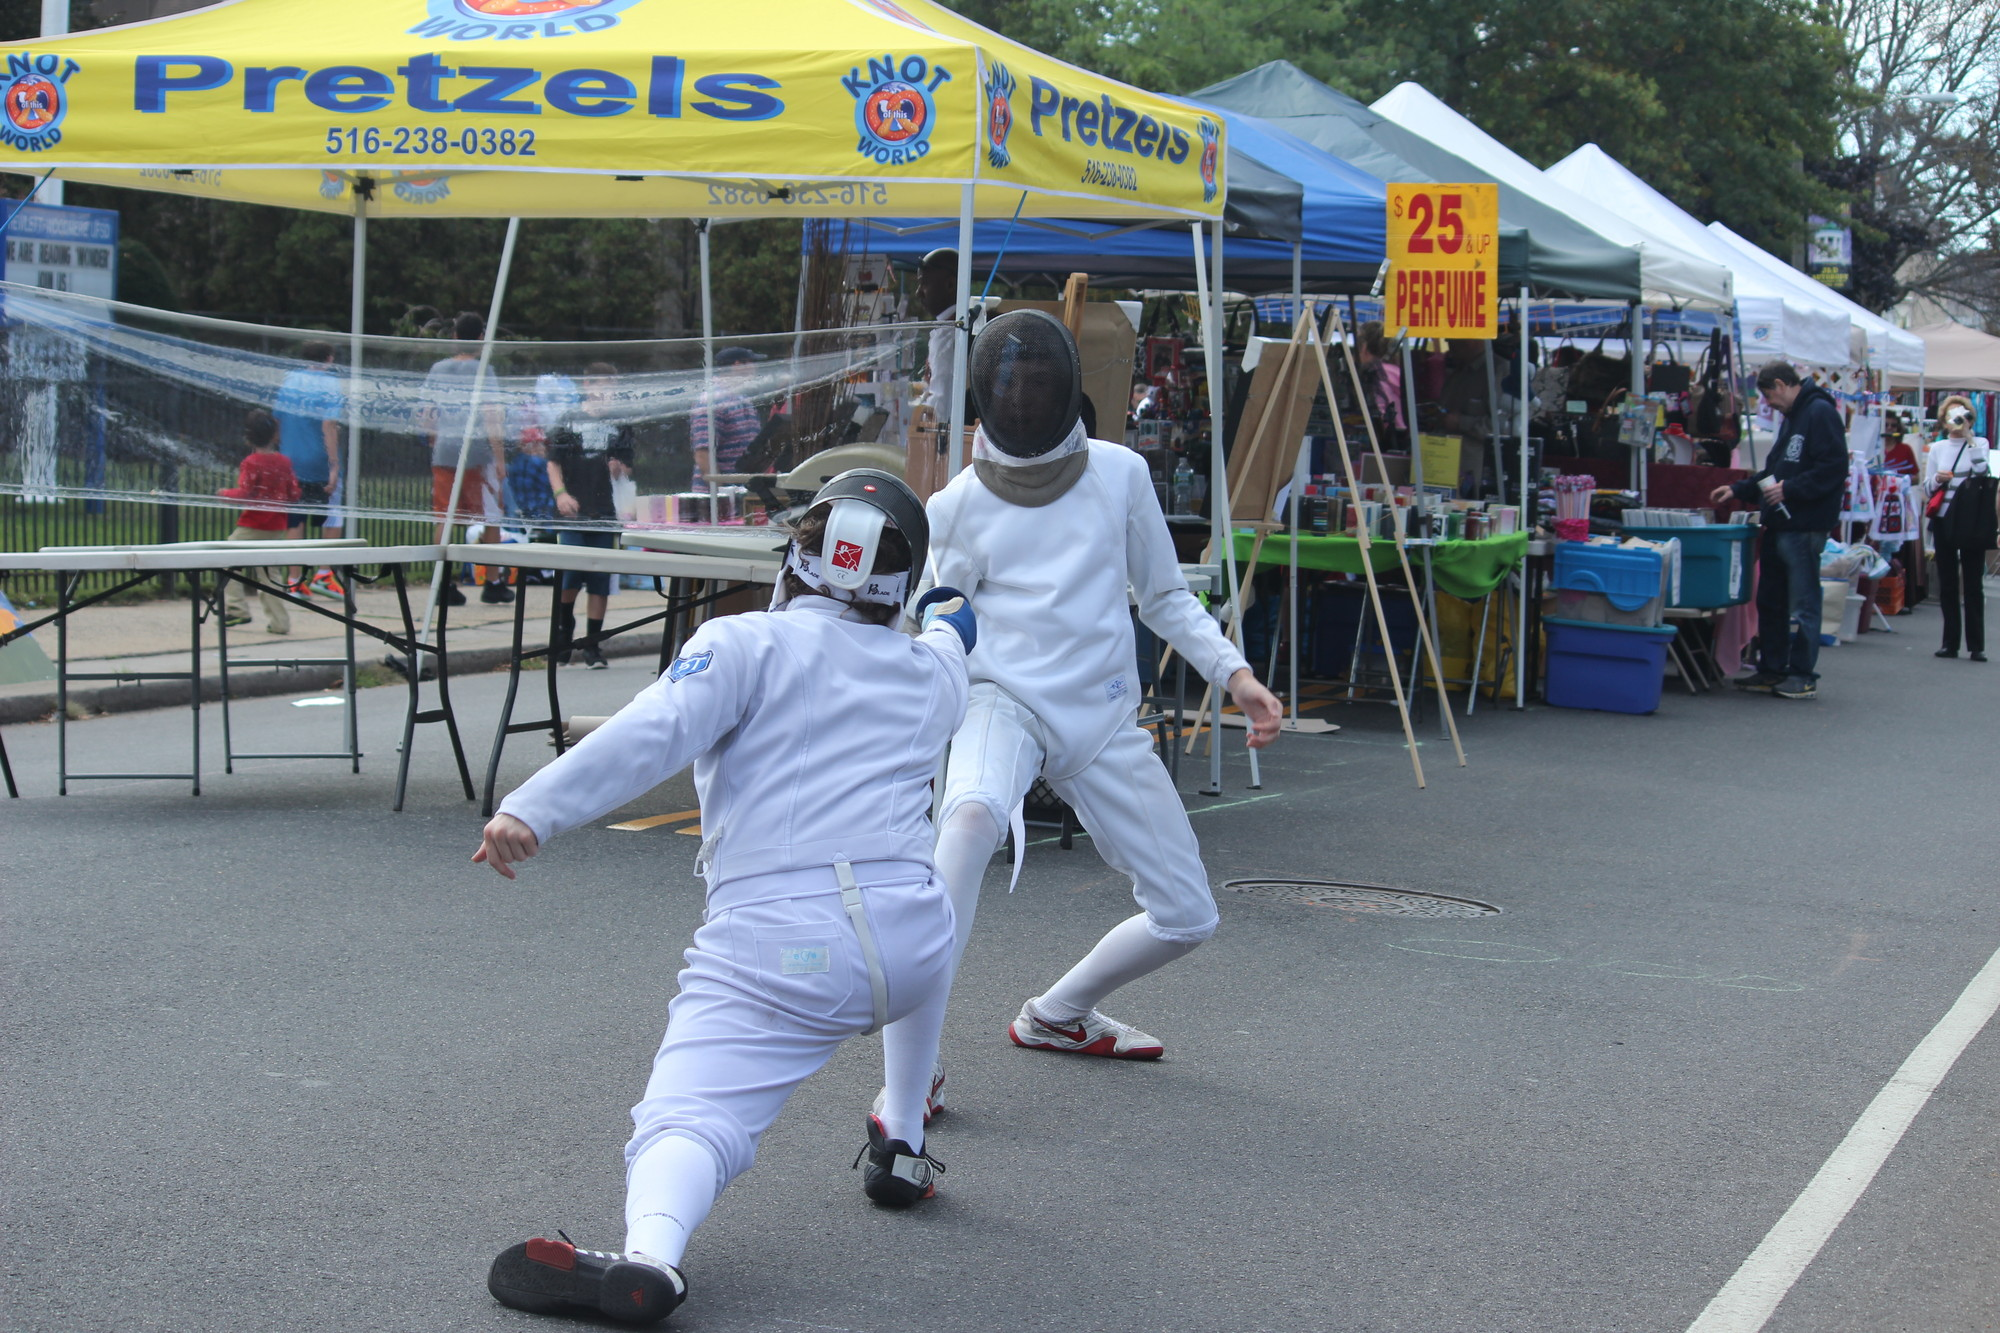 Sword play was on display as the Five Towns Fencing Club conducted demonstrations at the festival.